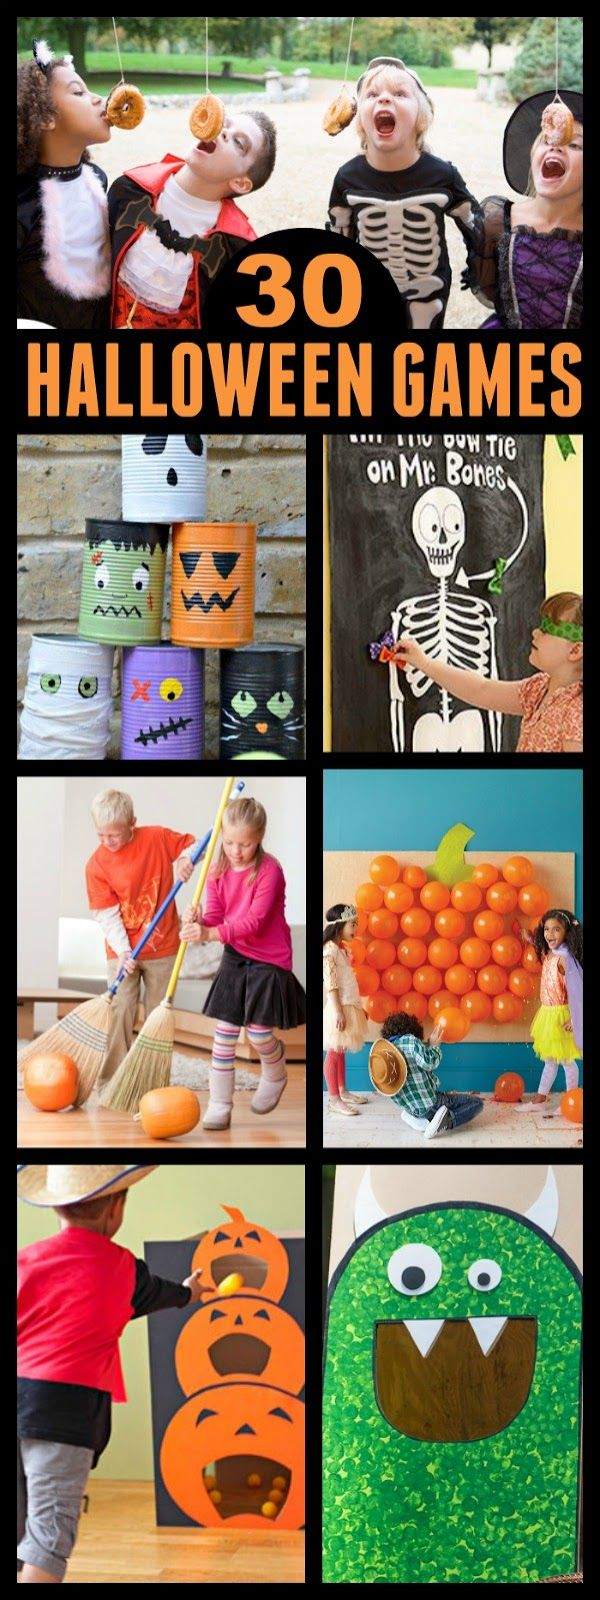 play spooky games at our bedtime bash halloween party on october 27 at northview - Halloween Party Games Toddlers